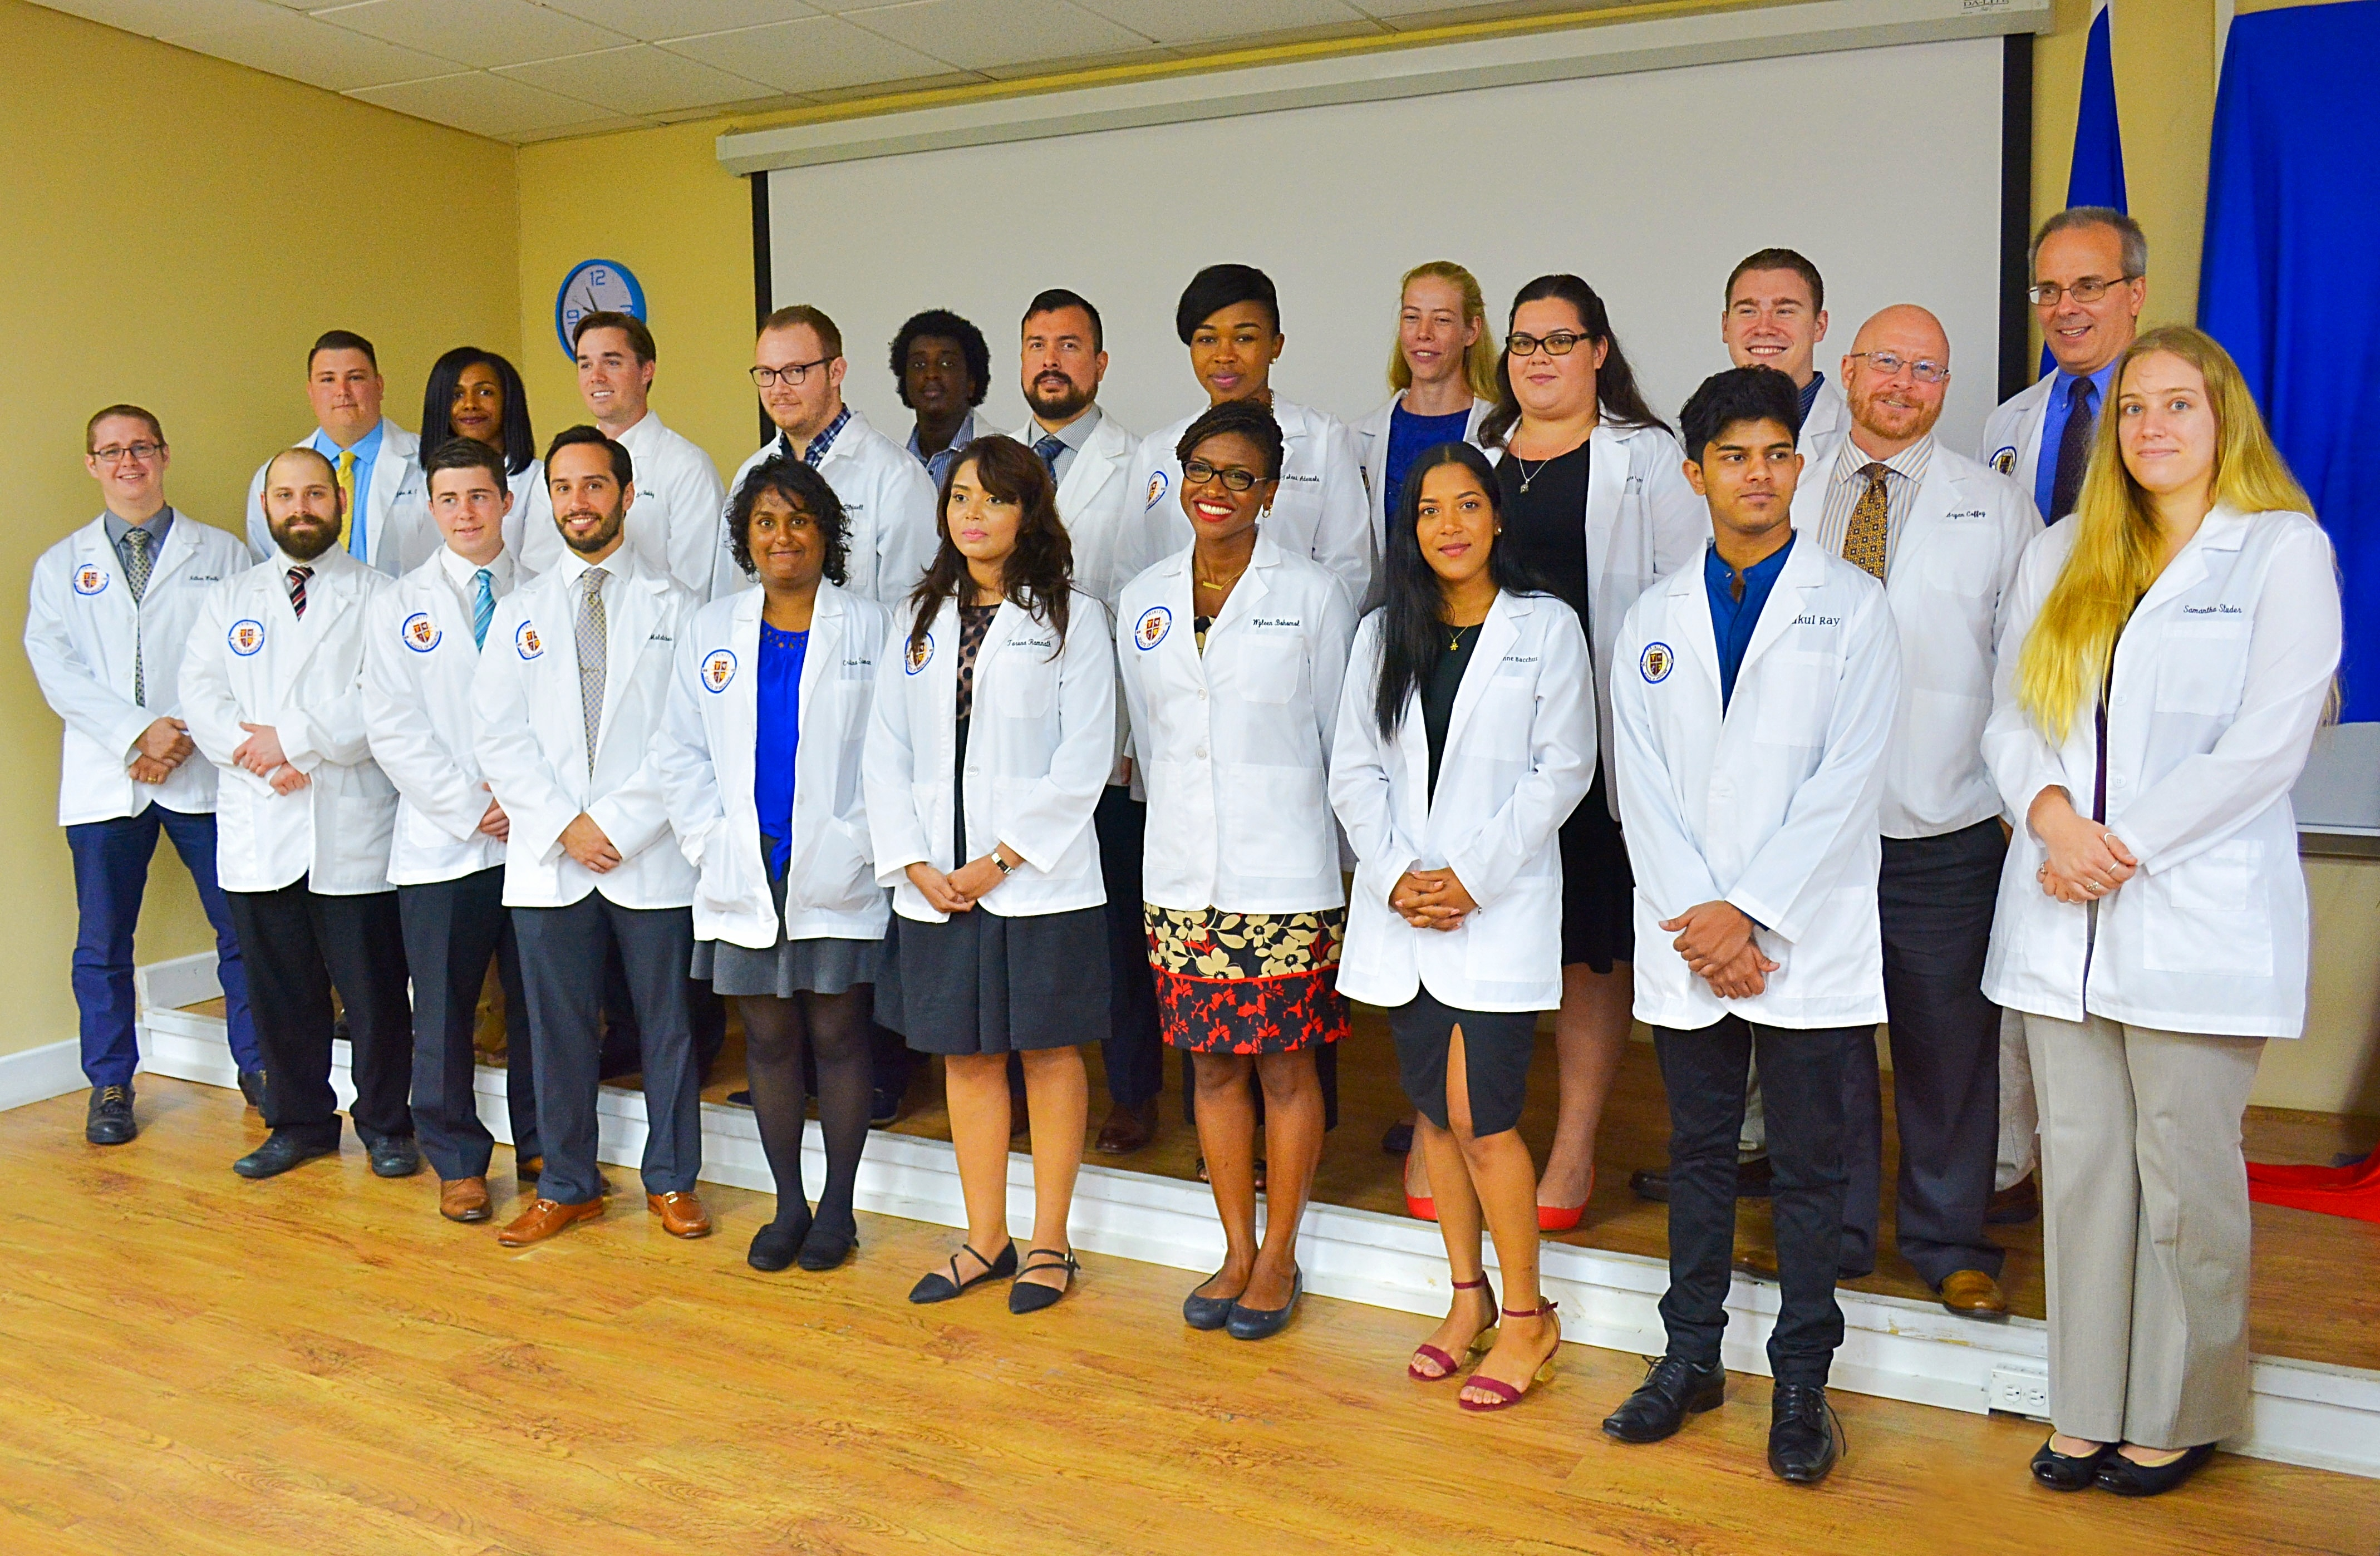 Trinity School of Medicine Holds May 2017 White Coat Ceremony